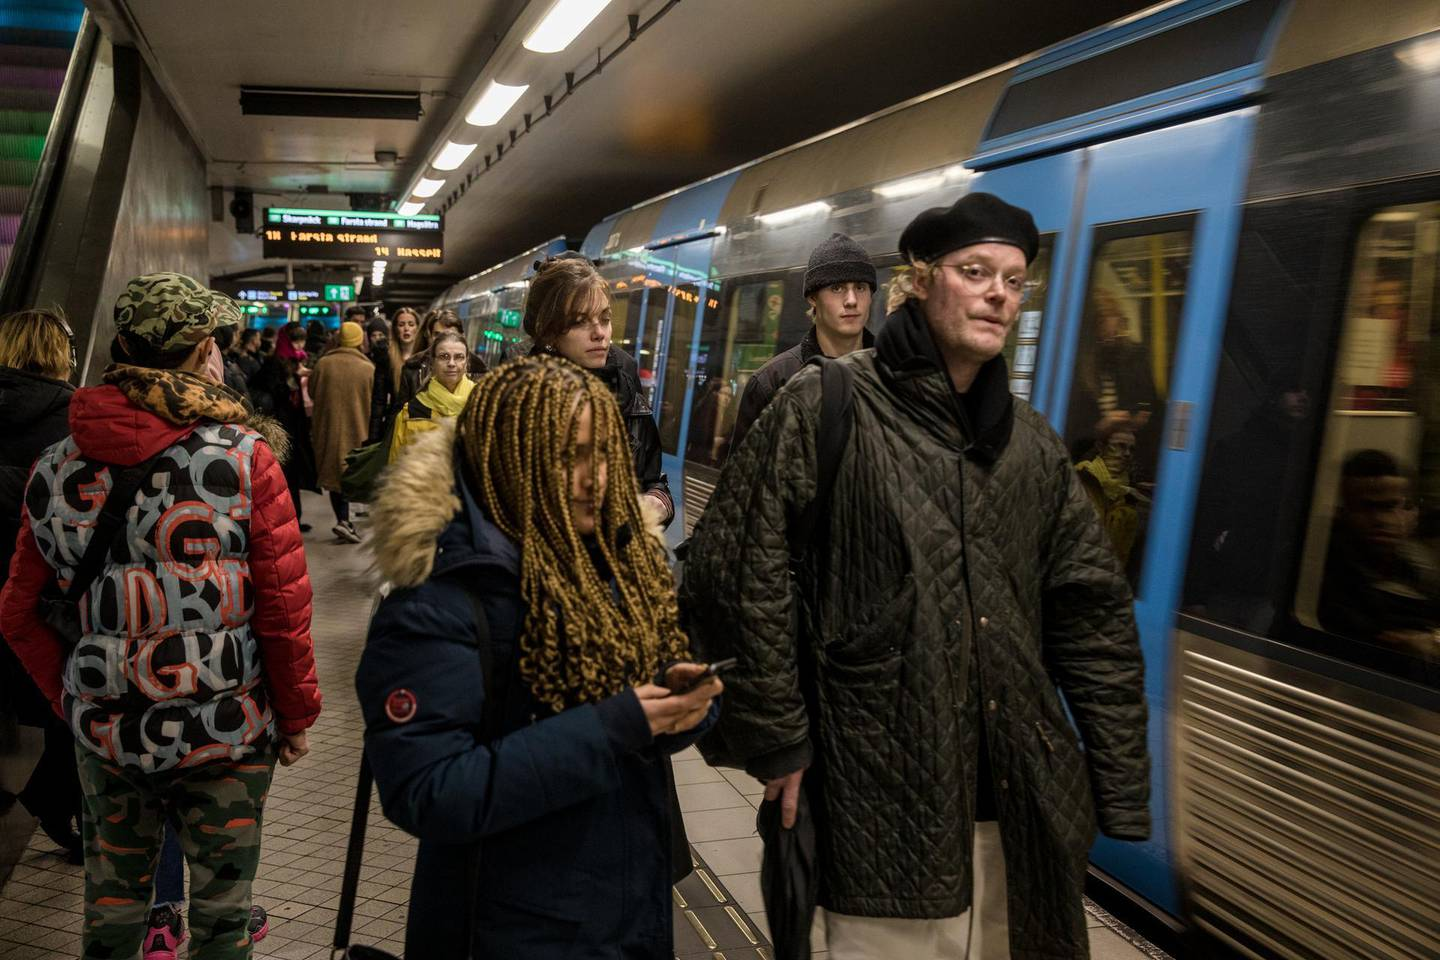 STOCKHOLM- SWEDEN - DECEMBER 4: Passengers are waiting on the platform at the T-centralen station to board the metro on December 4, 2020 in Stockholm, Sweden. Despite government guidelines regarding social distancing and avoiding large crowds, the metro stations are full of passengers crowded on the platforms. Over 7,000 people have died of COVID-19 in Sweden, giving the country of 10.2 million one of Europe's highest death rates per capita. (Photo by Jonas Gratzer/Getty Images)